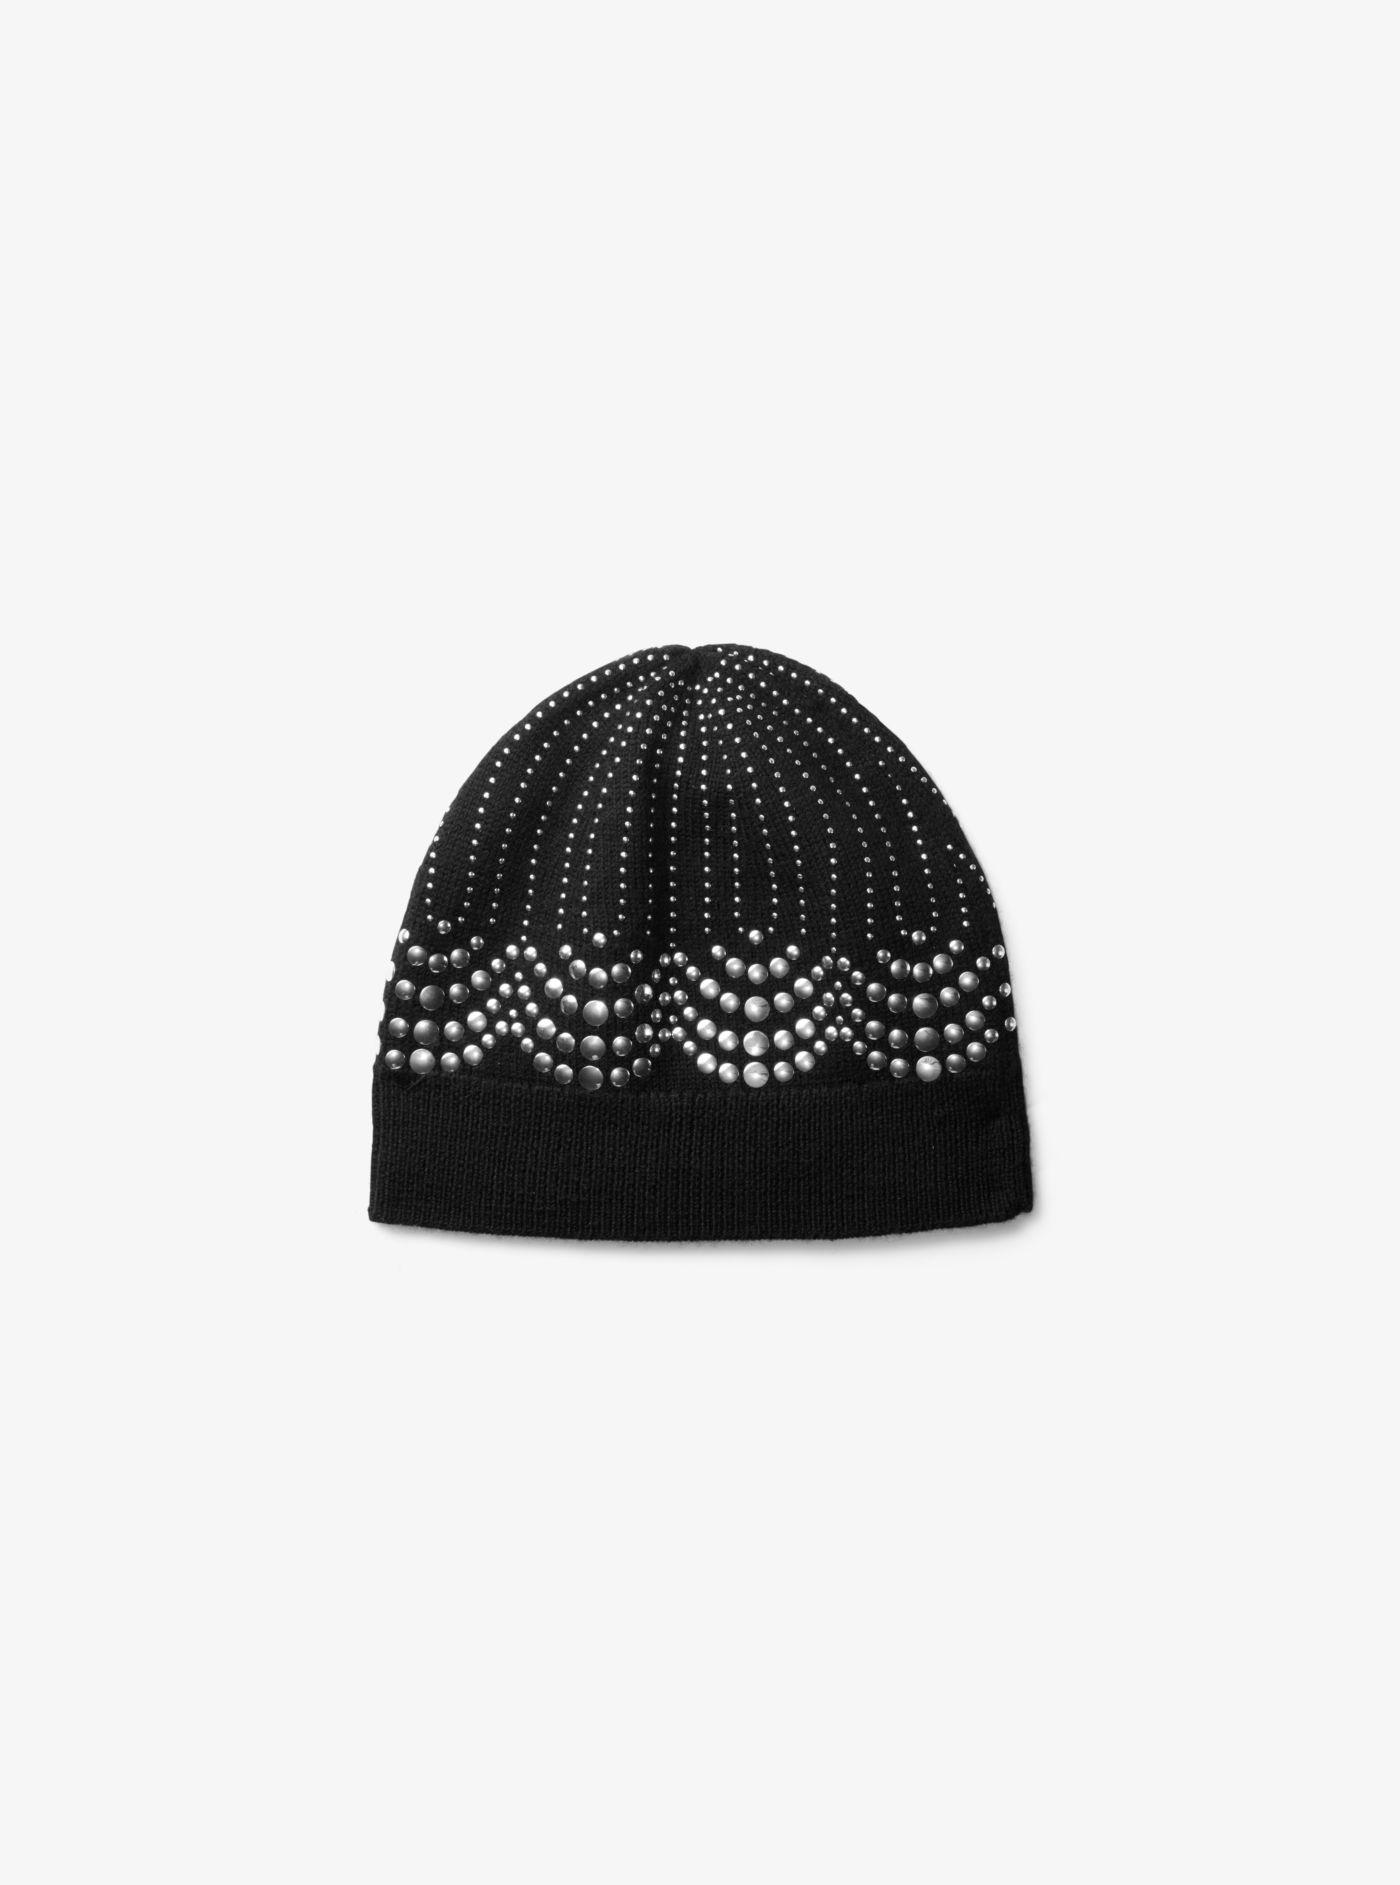 868589838f5 Lyst - Michael Kors Embellished Wool Beanie in Black